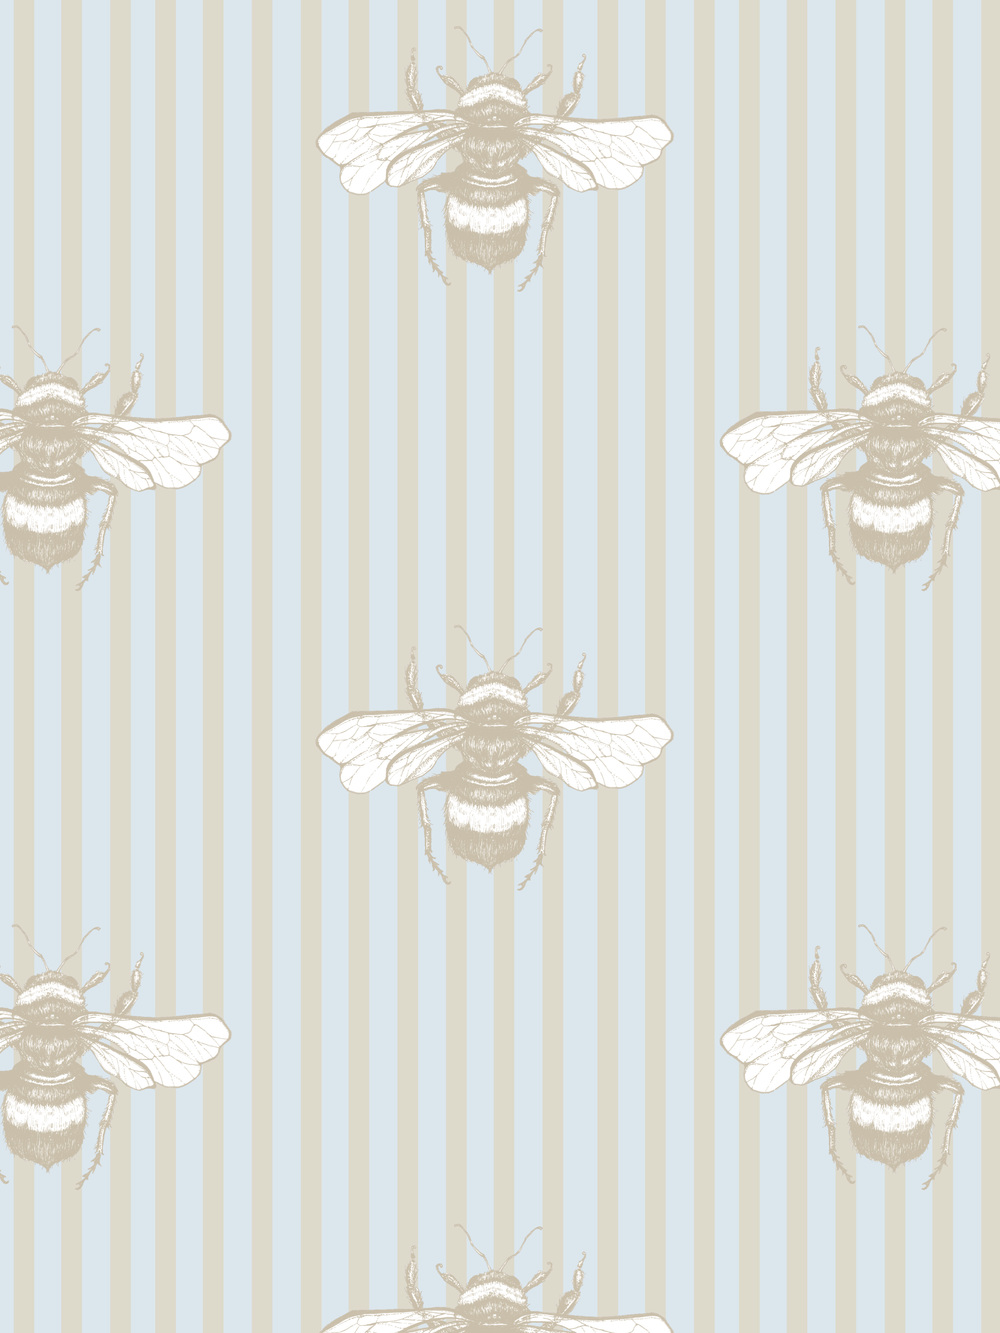 Playing around with the idea of having some honey bee wallpaper! Bzz.